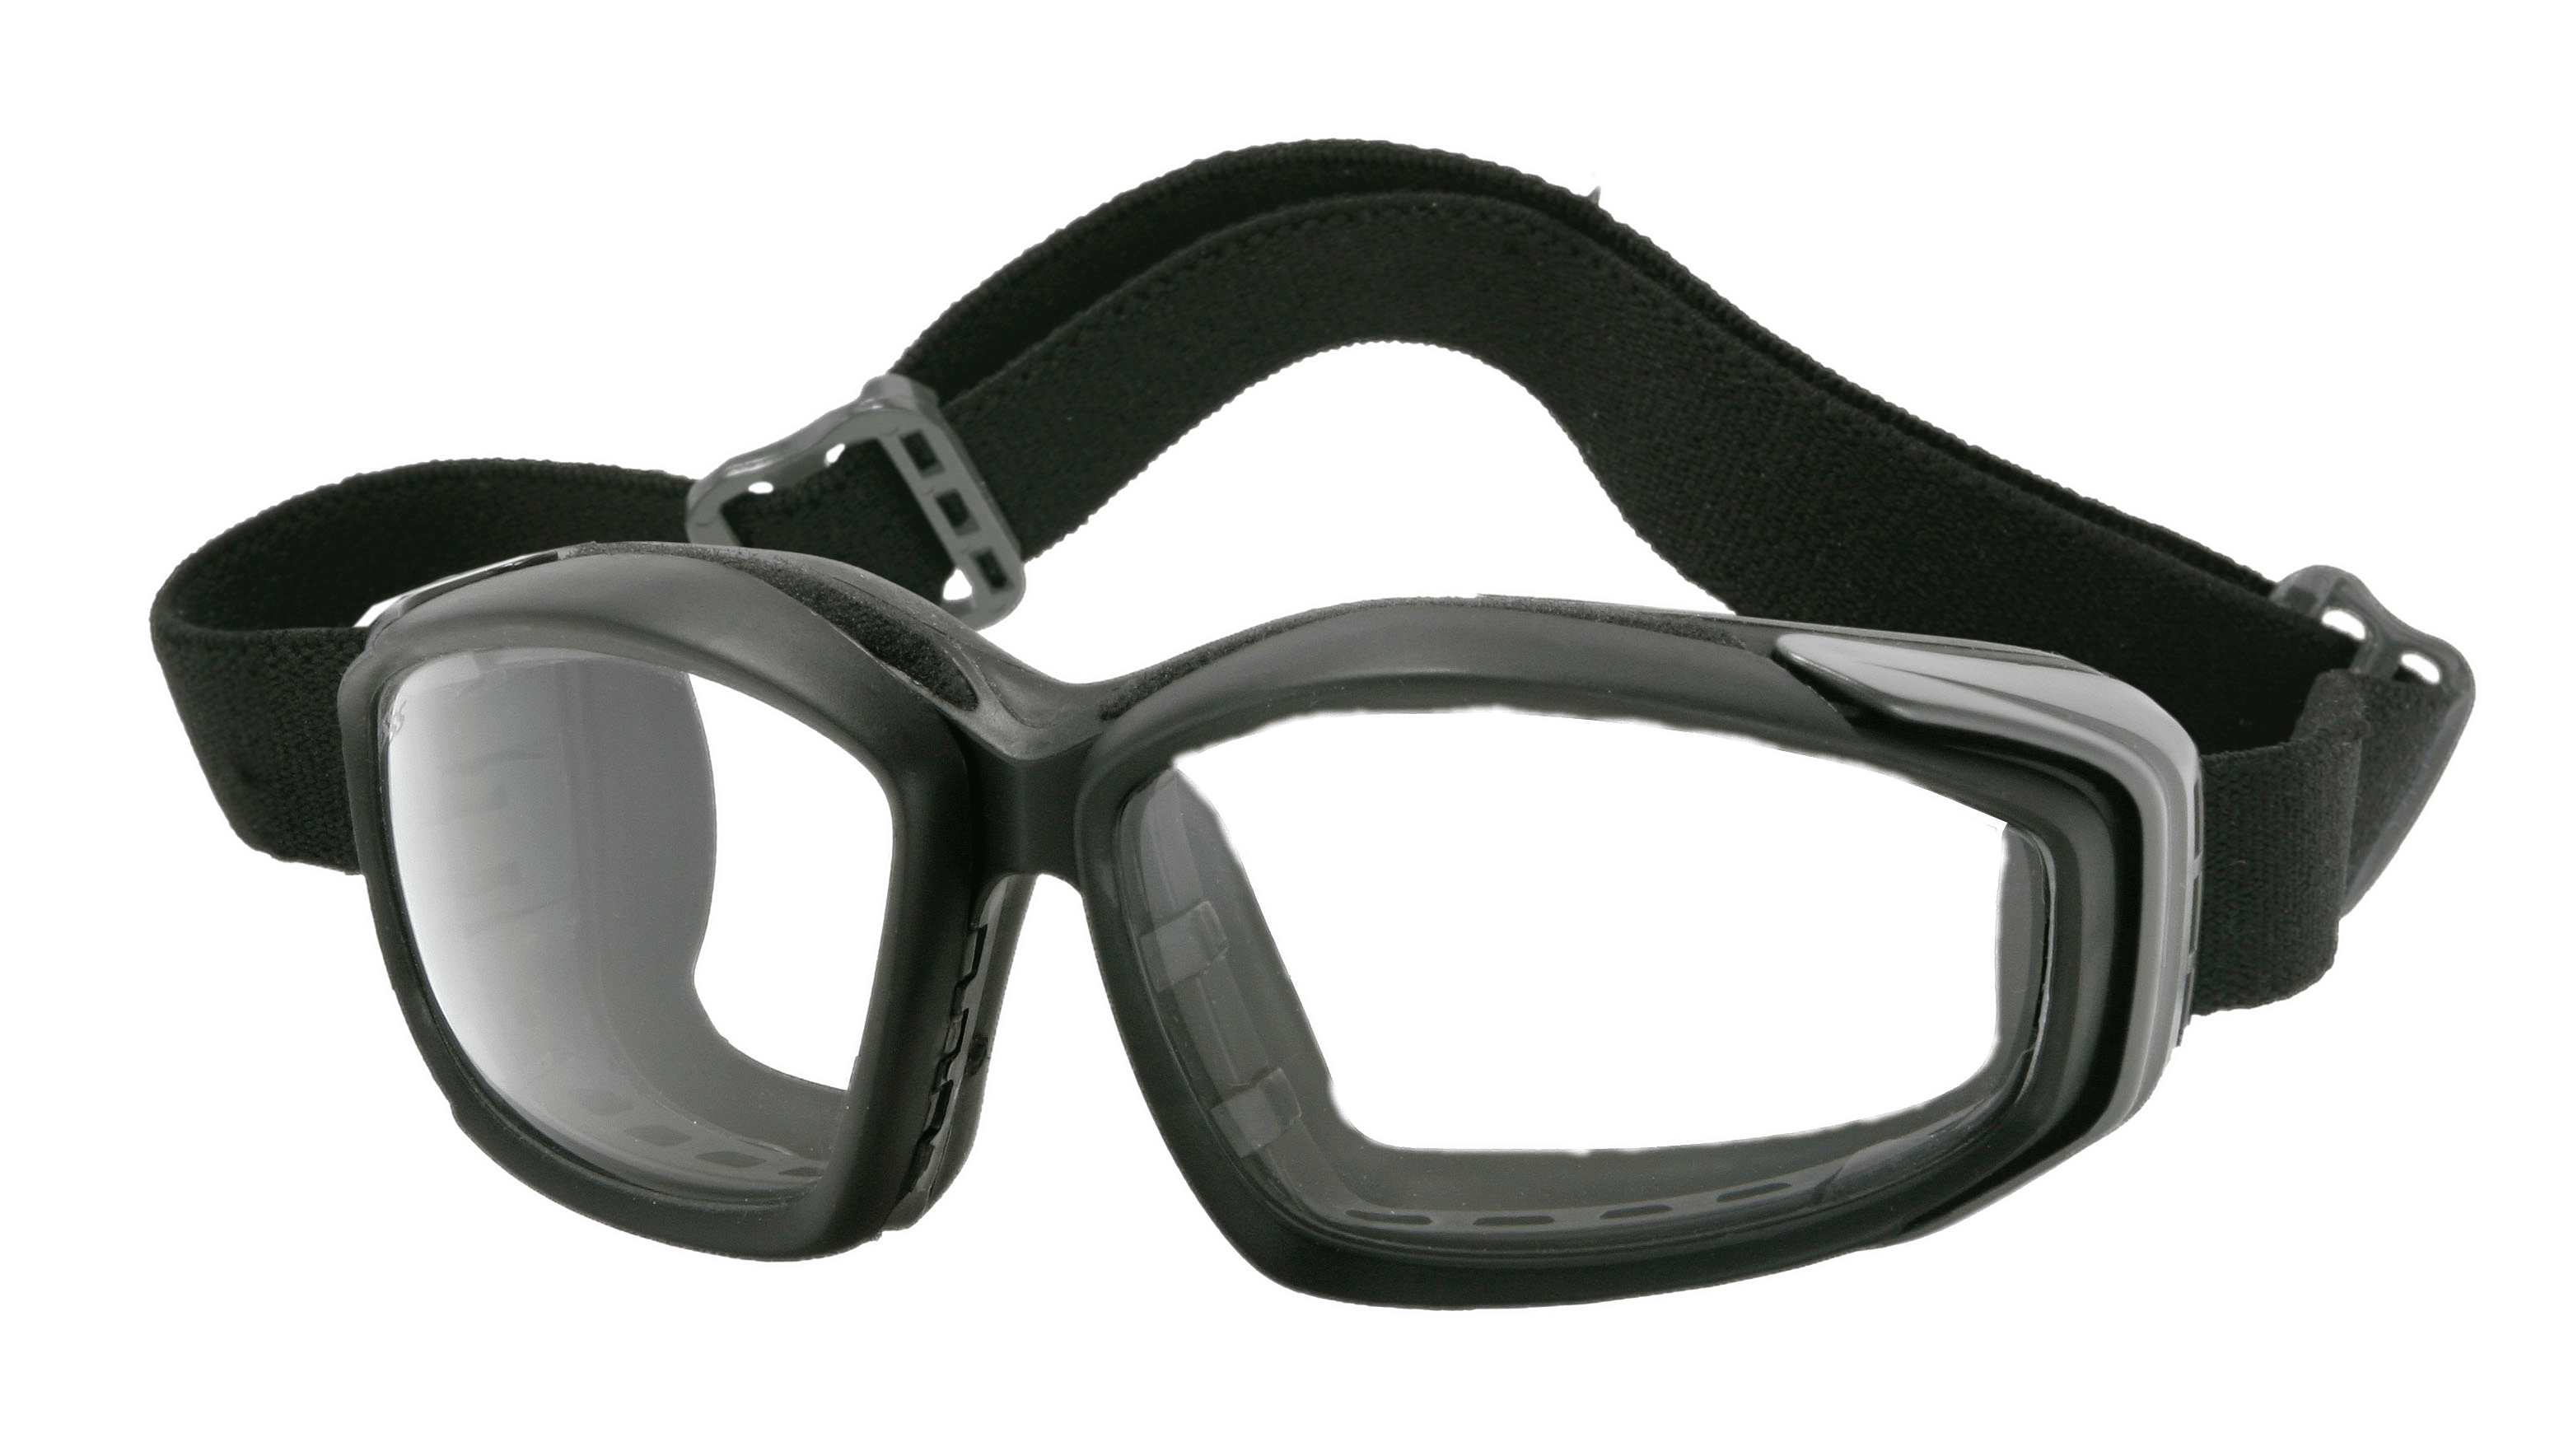 Swimming goggles transparent png. Steampunk clipart goggle